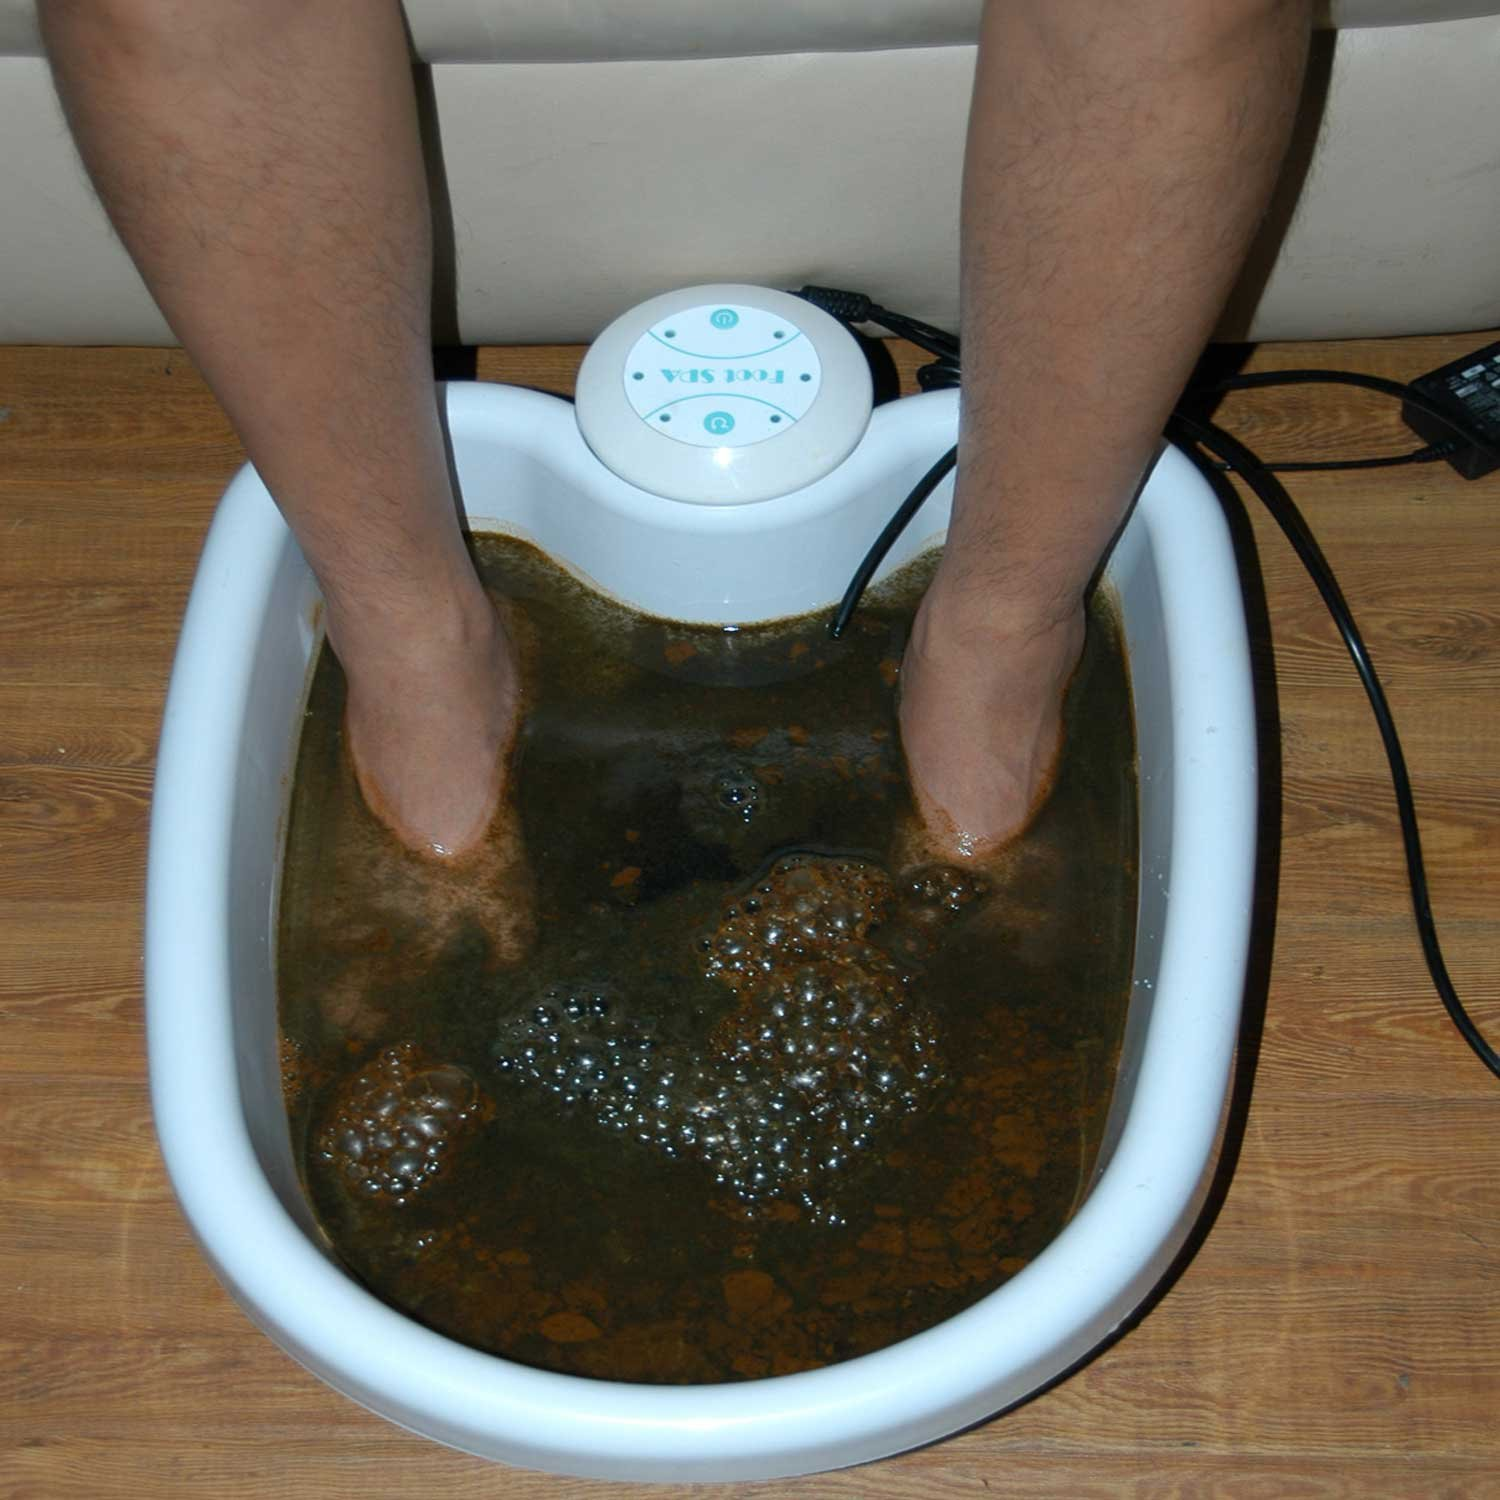 Amazon.com: Logisaf ION Ionic Detox Foot Bath Cleanse SPA with TUB ...